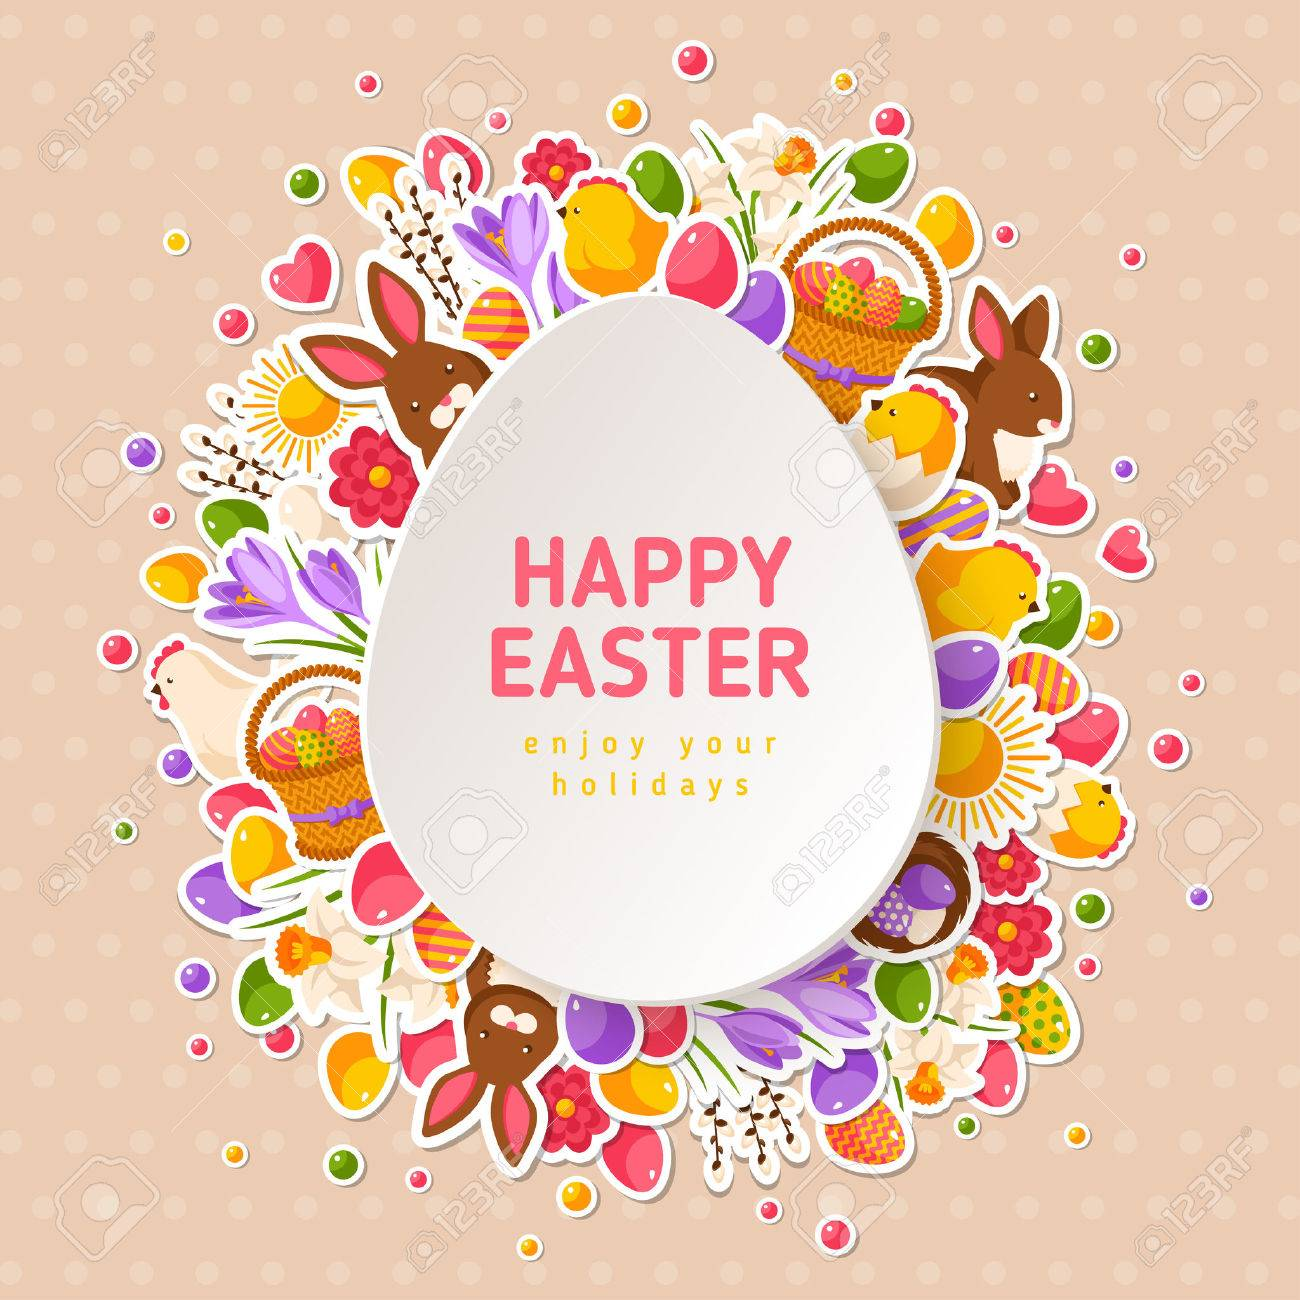 Happy Easter Greeting Cards With Paper Cut Easter Egg Vector